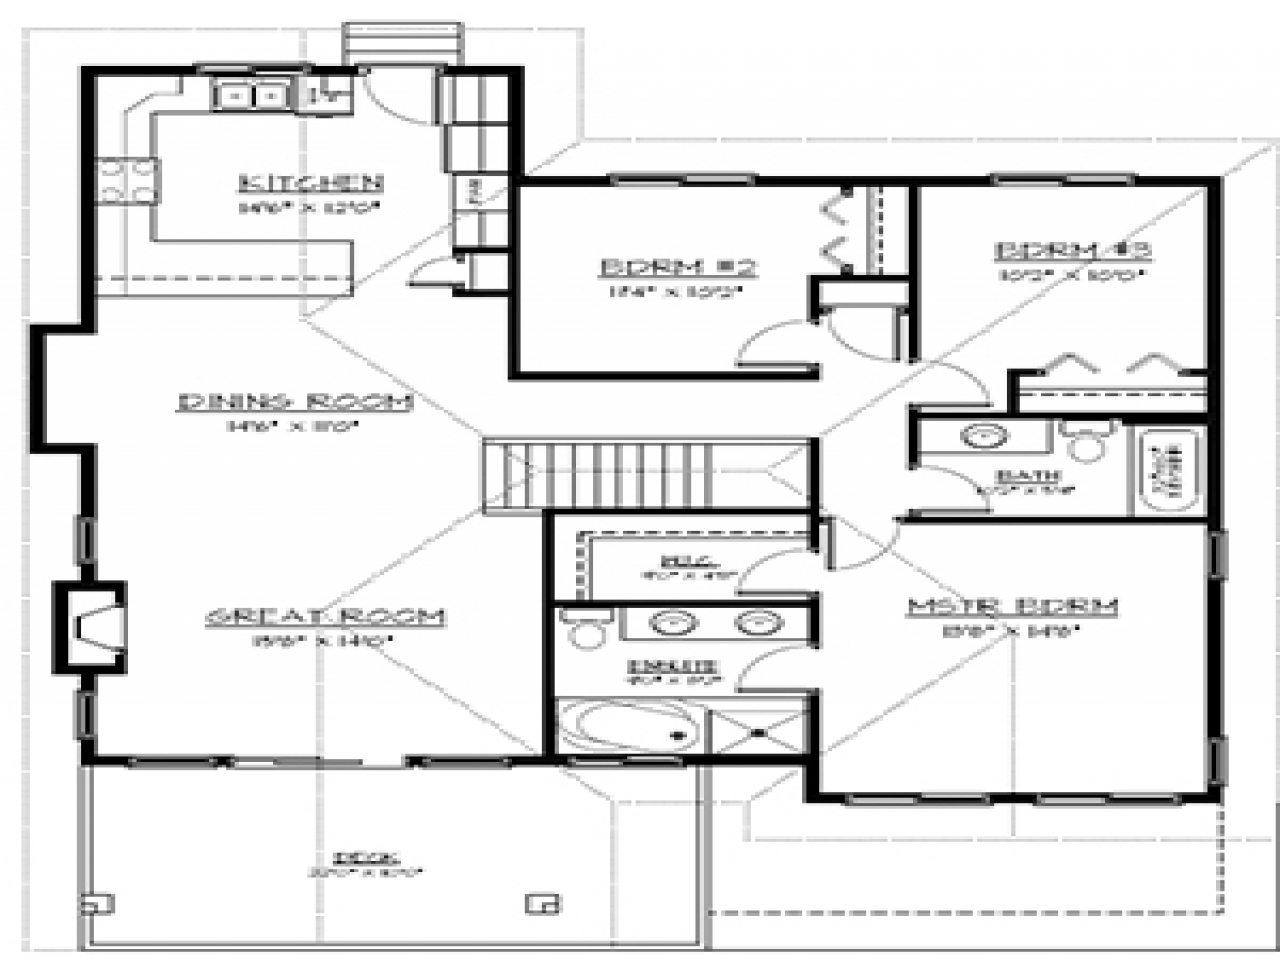 Finished basement floor plans finished basement gallery for Home plans with basement floor plans